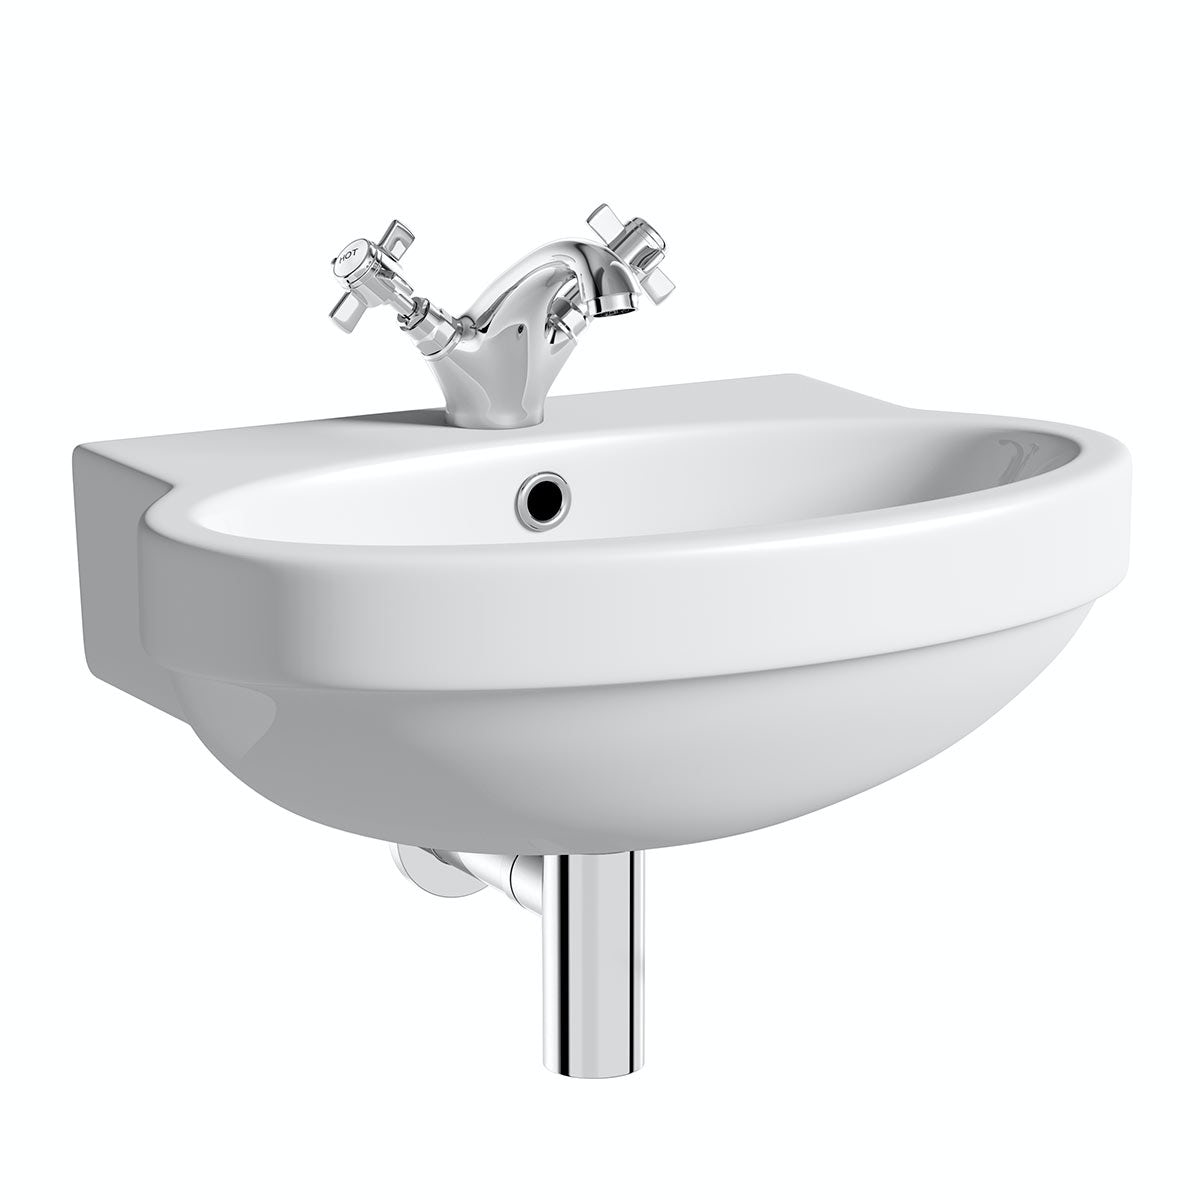 Deco 1 tap hole wall hung basin 490mm with waste VictoriaPlum.com